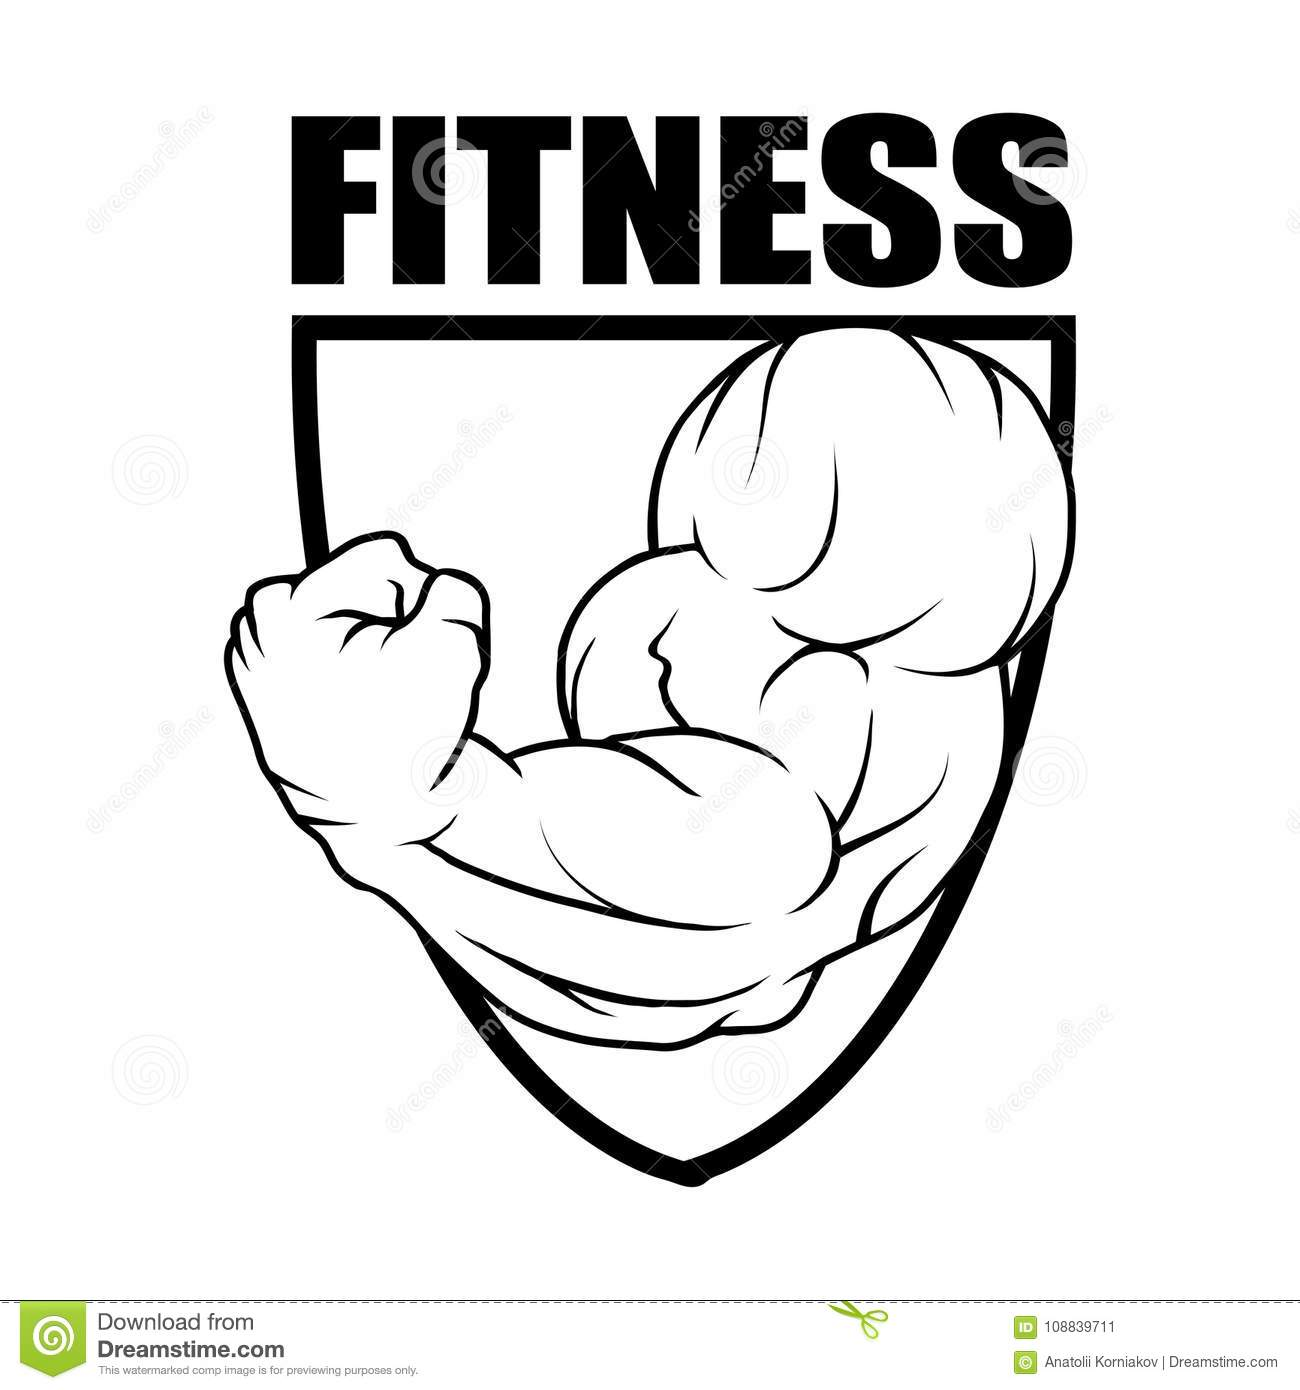 Fitness Center Gym Emblem Fitness Logo Stock Vector Illustration Of Bodybuilding Drawn 108839711